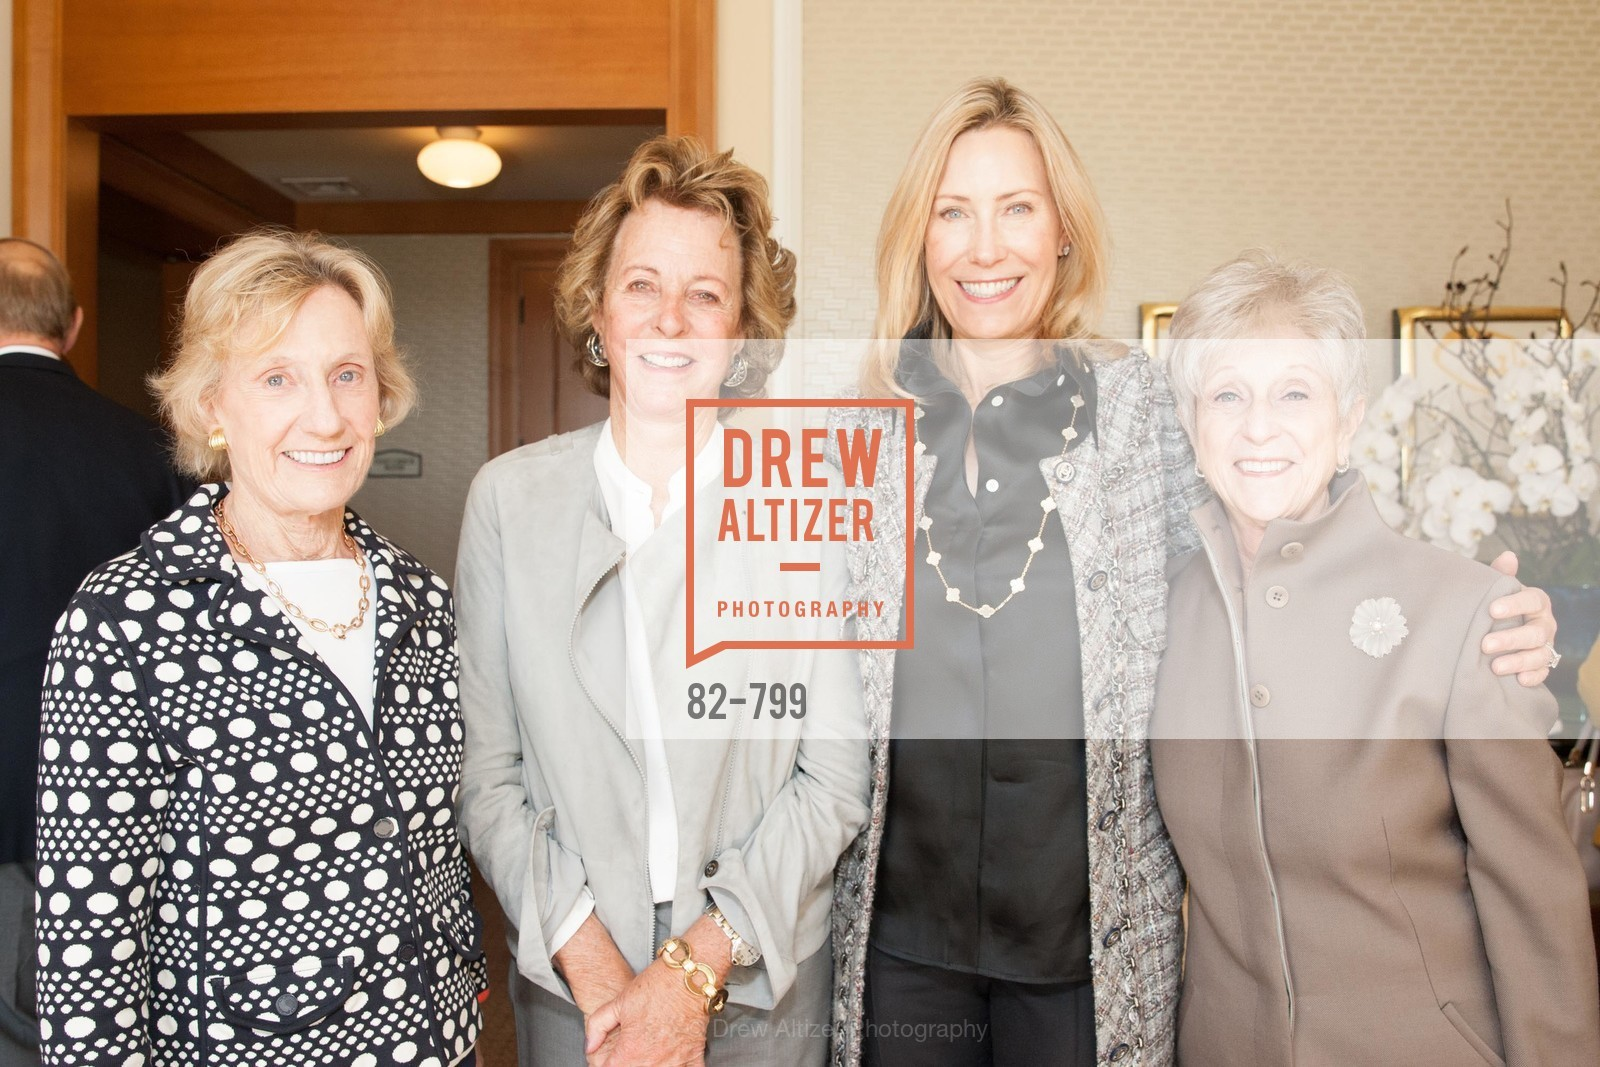 Nancy Bechtle, Nancy Livingston, COMPASSION & CHOICES - Empowerment Luncheon, US, April 24th, 2015,Drew Altizer, Drew Altizer Photography, full-service event agency, private events, San Francisco photographer, photographer California